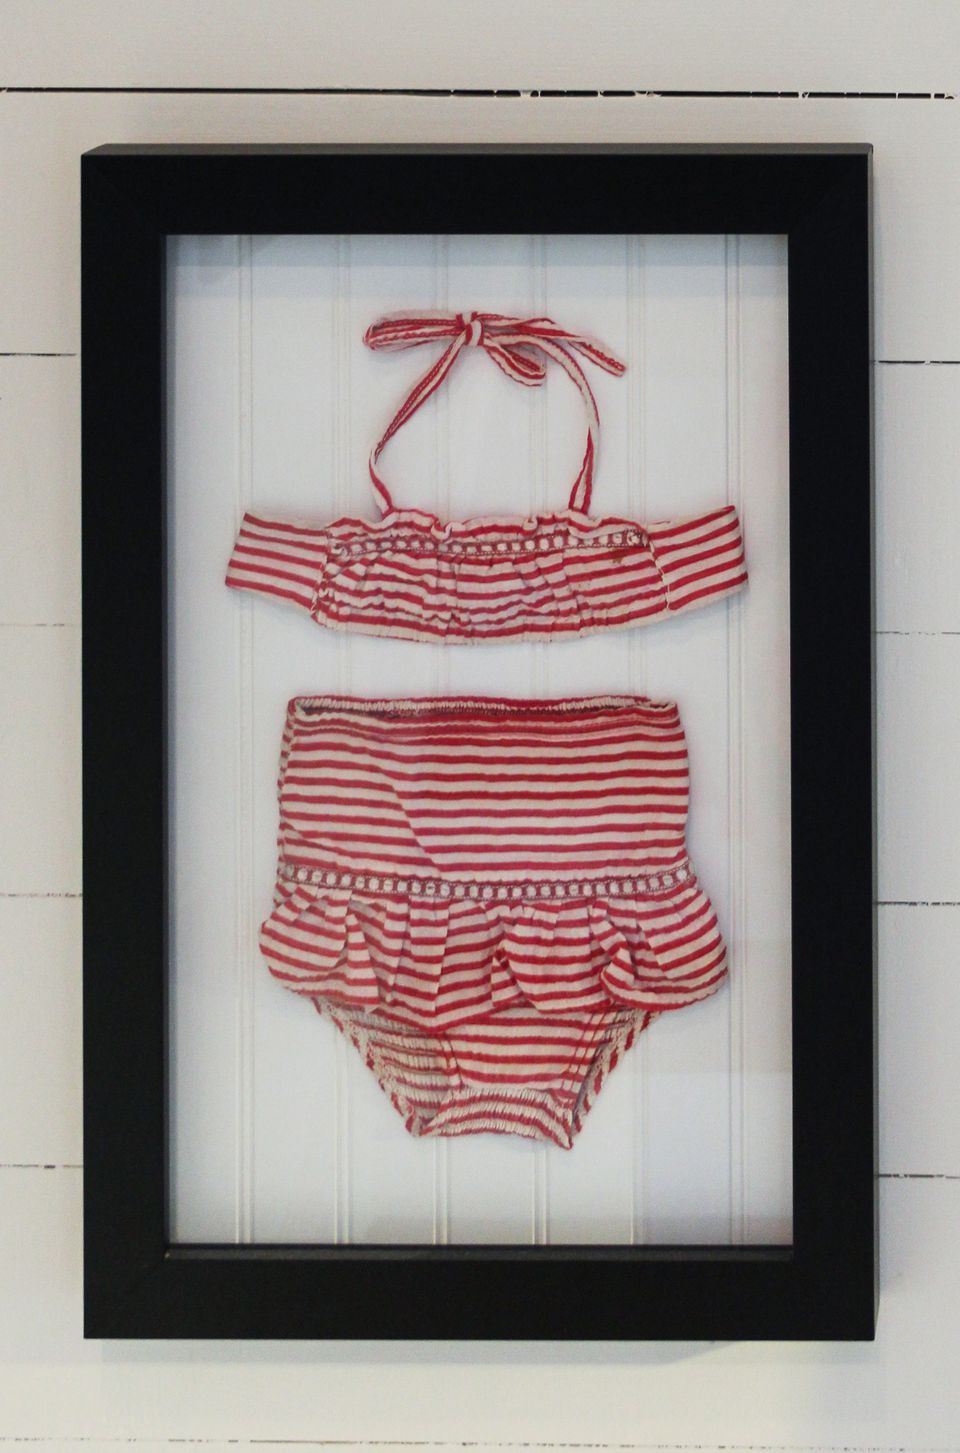 Vintage swimsuit framed and hanging on a wall.